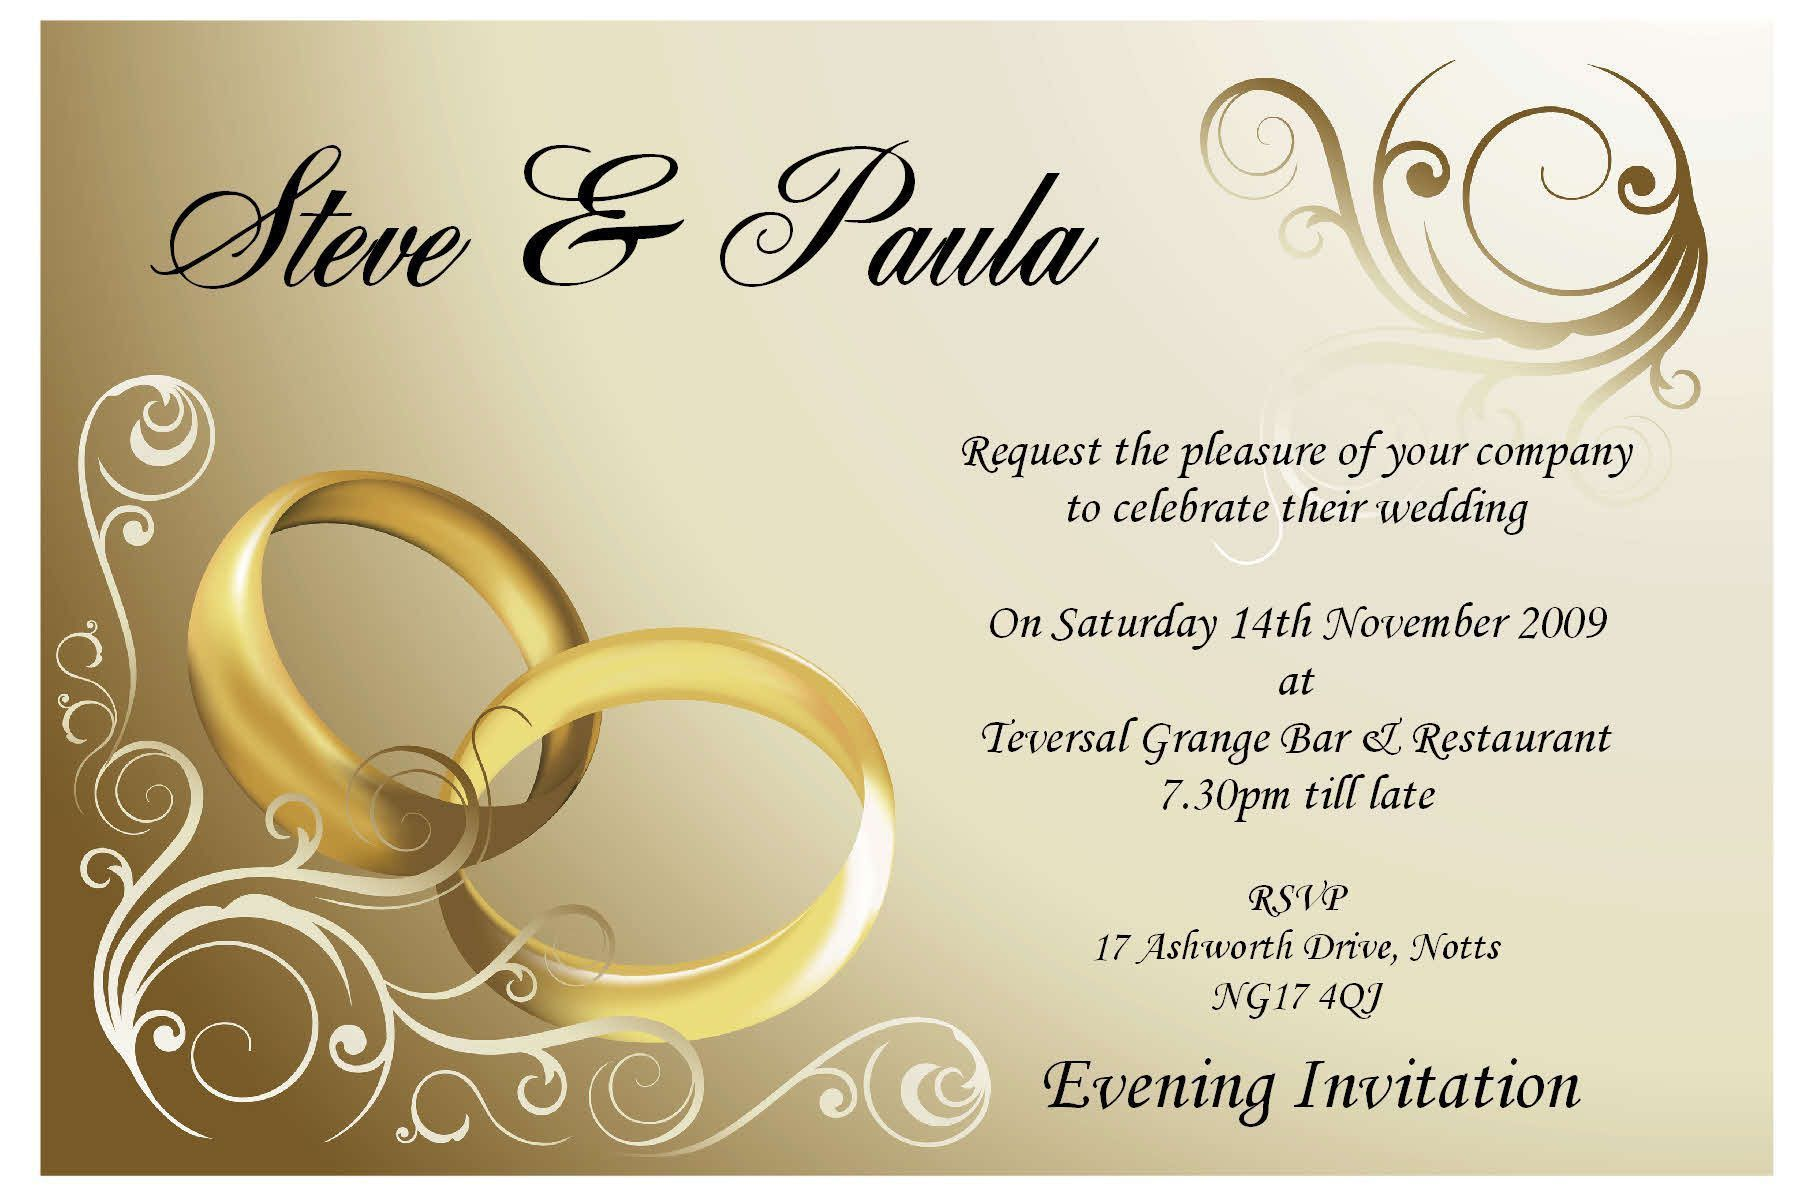 001 Remarkable Free Engagement Invitation Template Online With Photo High Definition Full